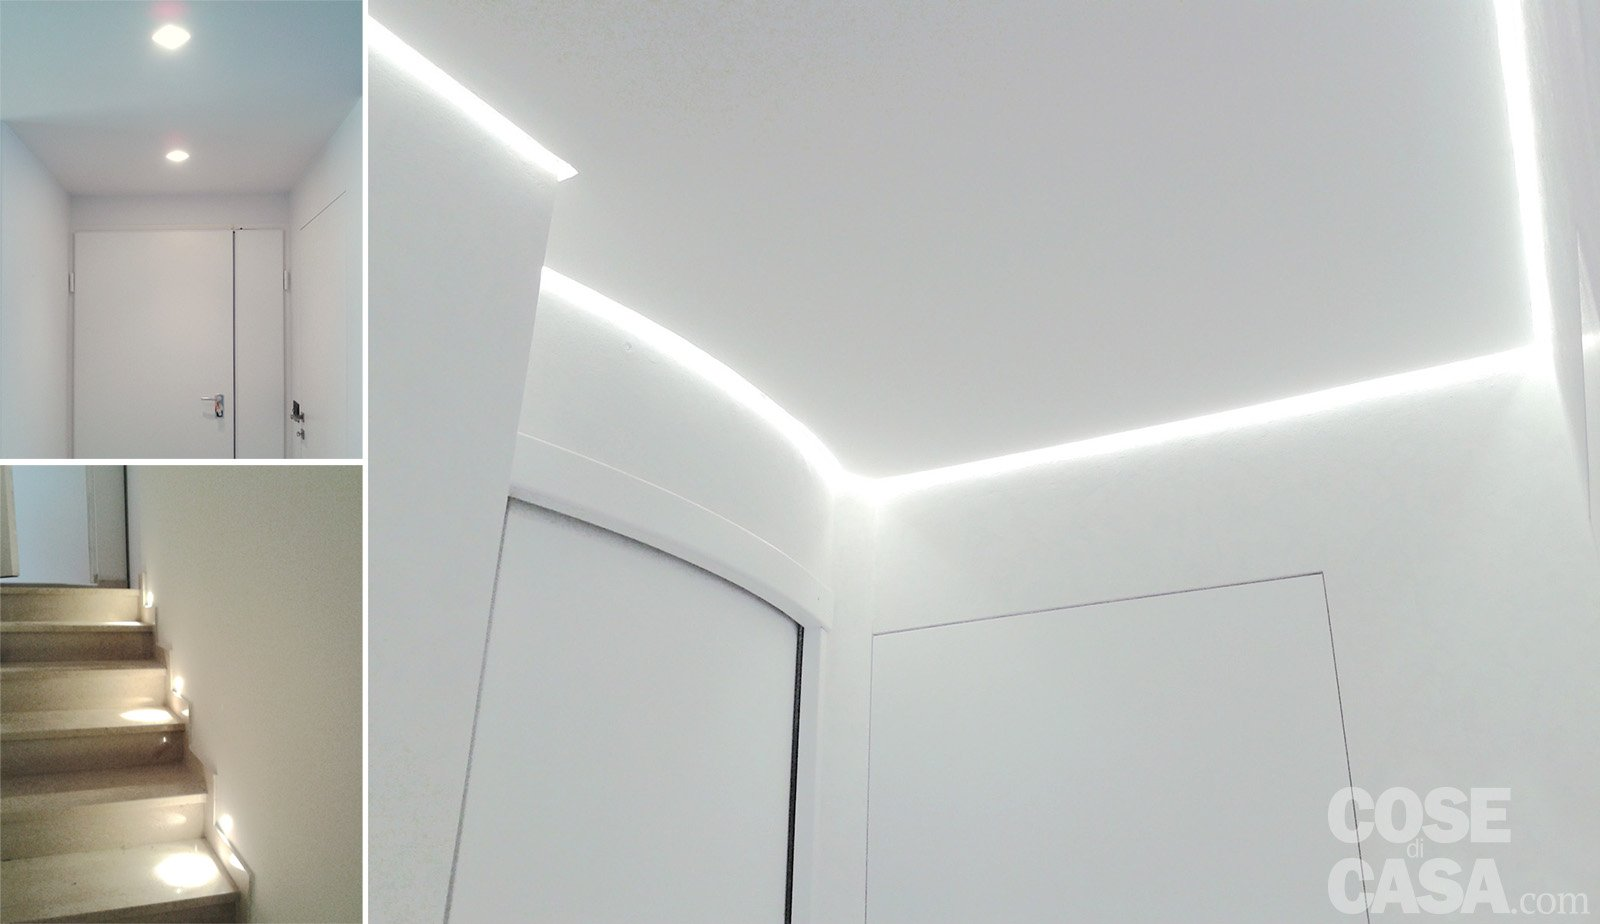 Casa immobiliare accessori illuminazione led a soffitto for Lampade a led casa